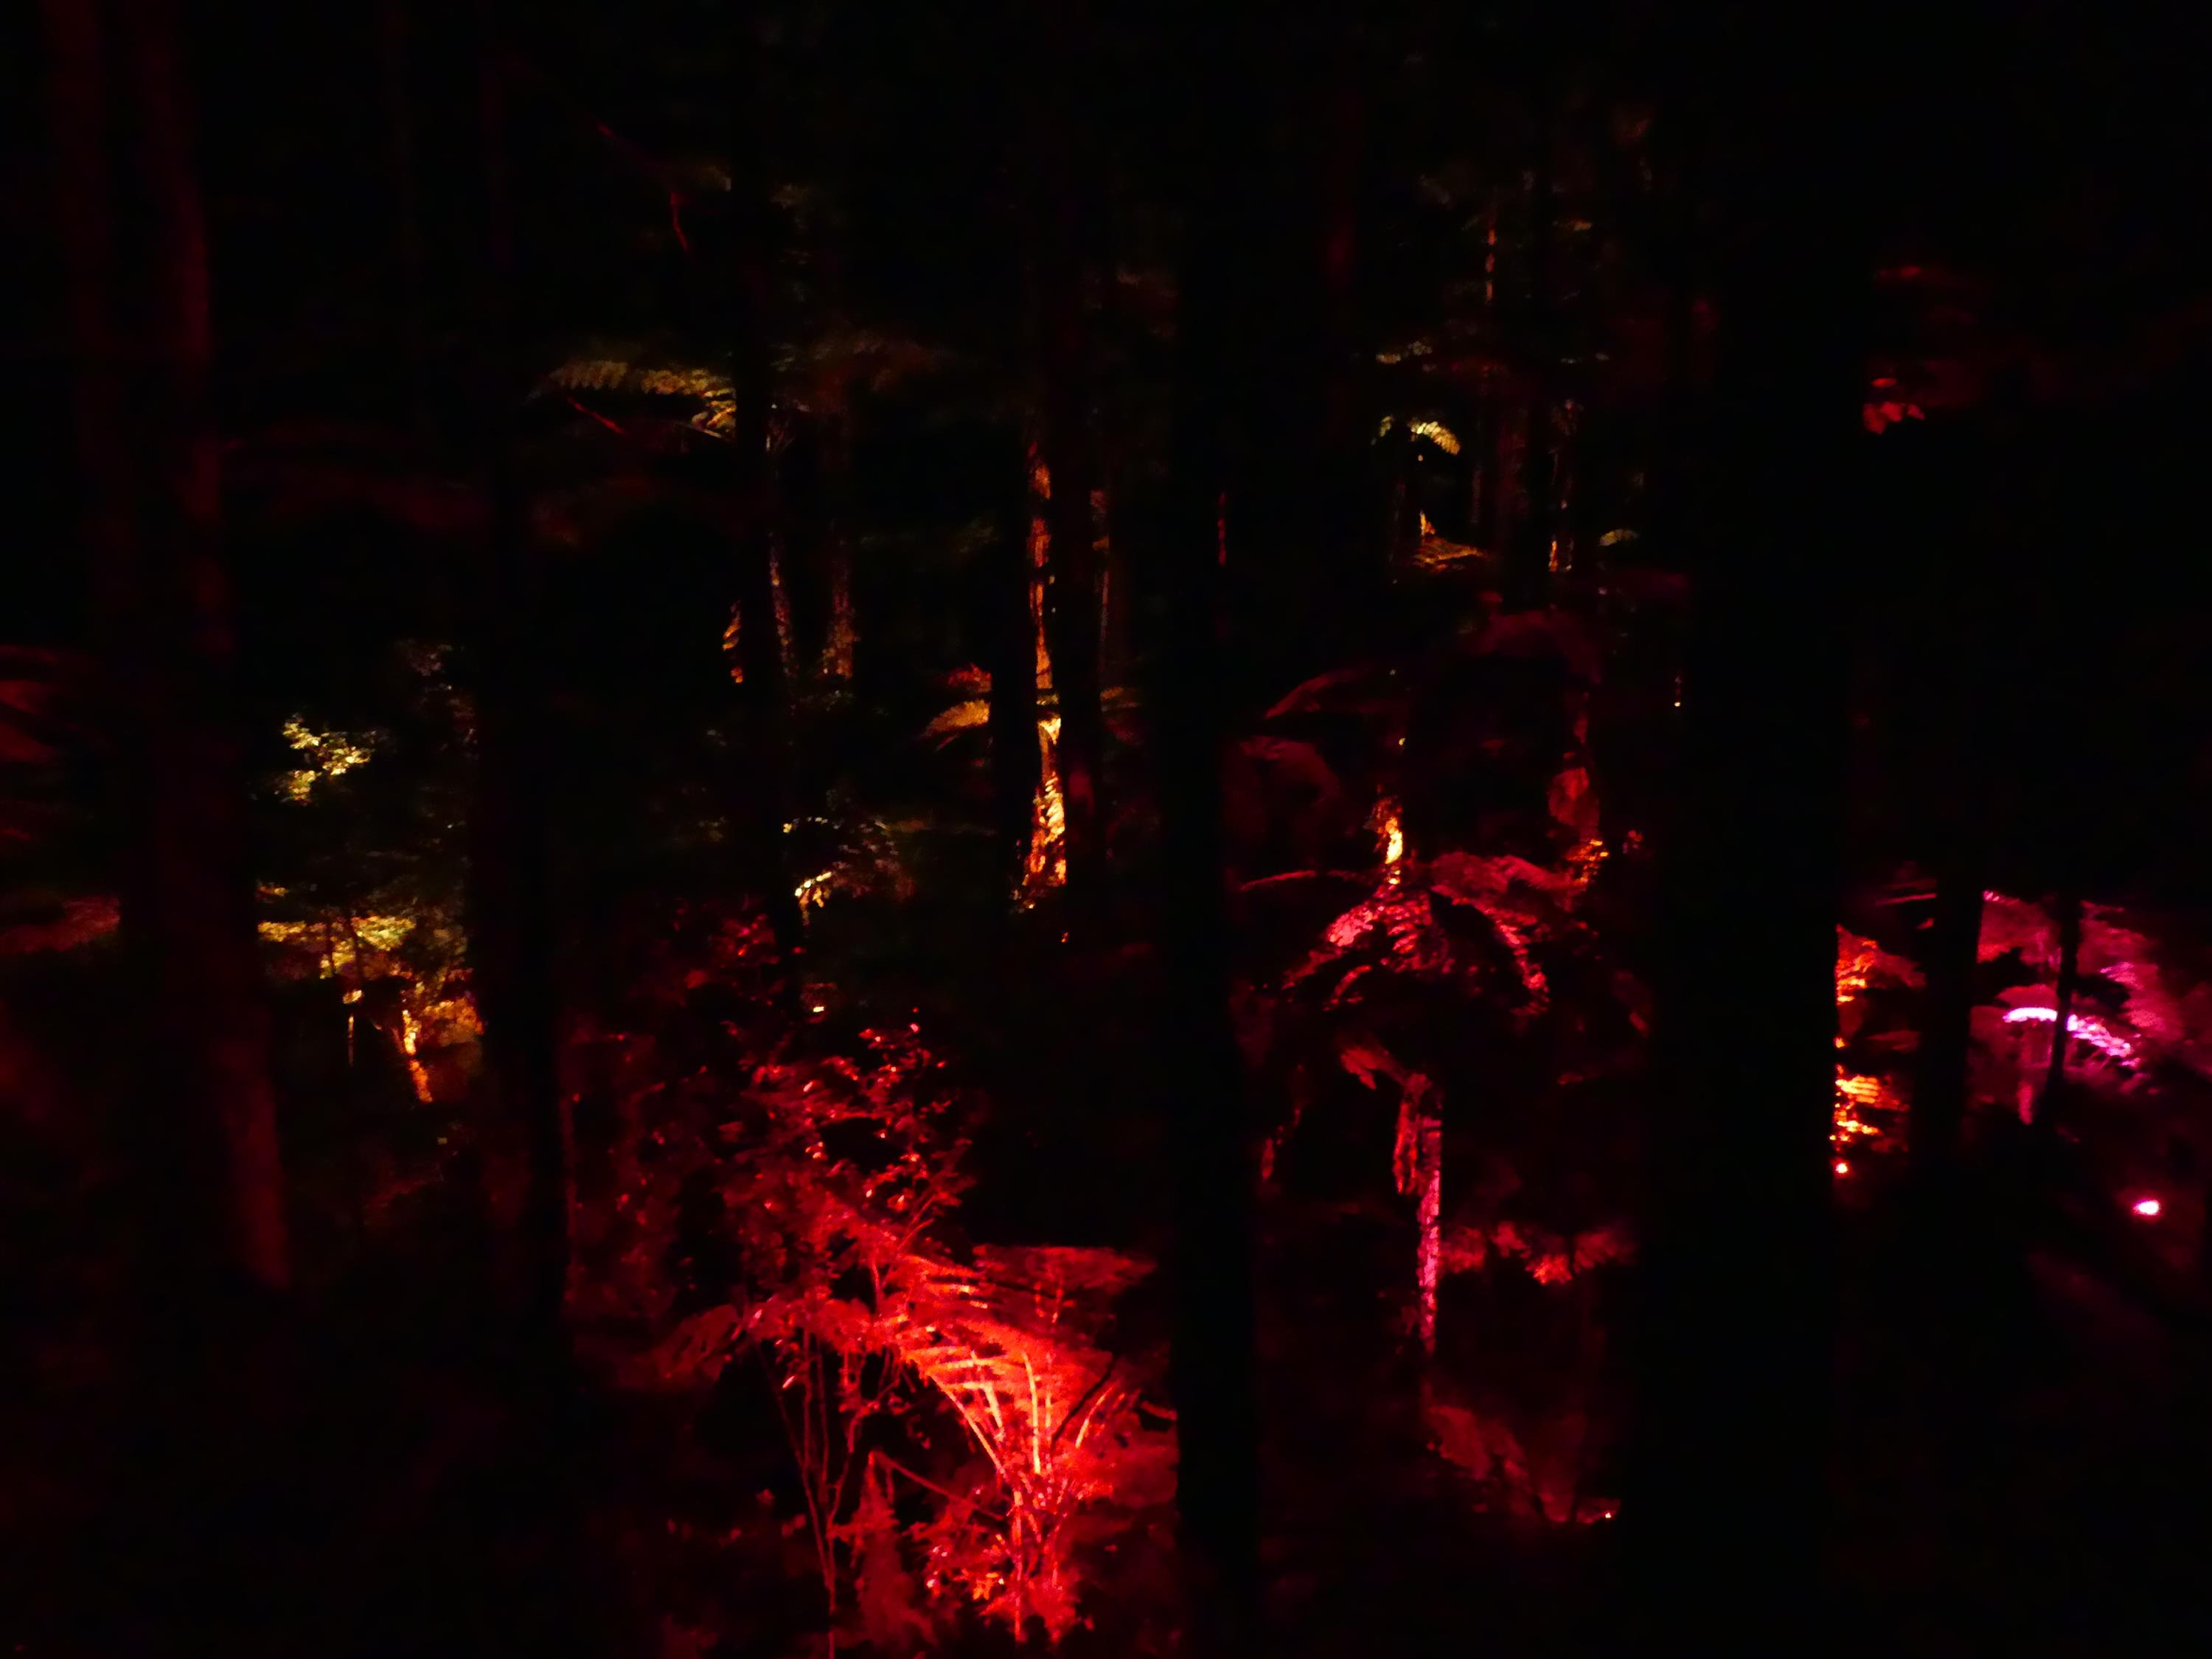 http://www.sans-avion.net/tdm/wp-content/uploads/Redwoods-Nightlights-33-Custom.jpg